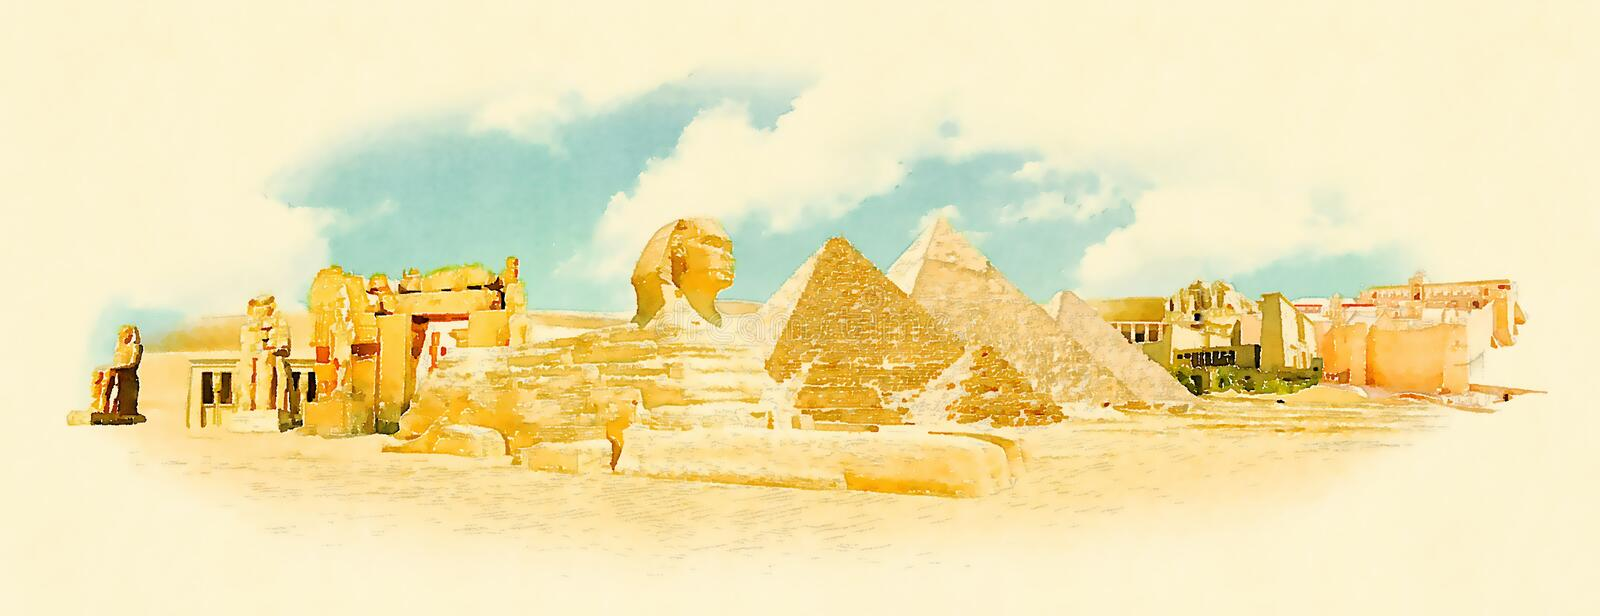 Egypt. Water color panoramic egypt illustration